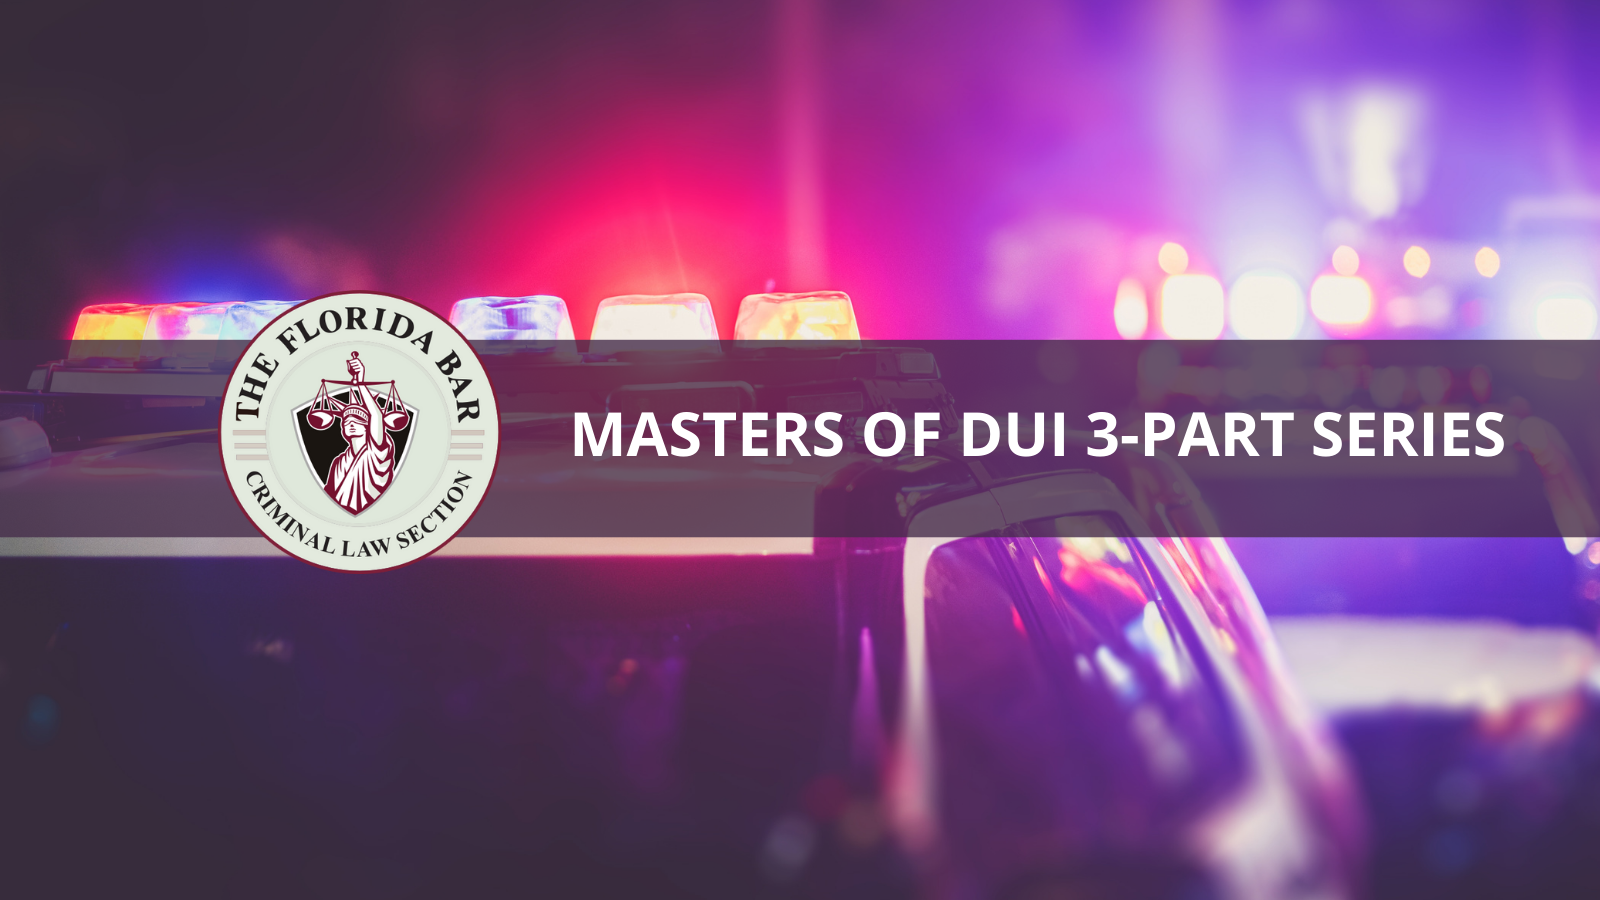 Masters of DUI 3-Part Series